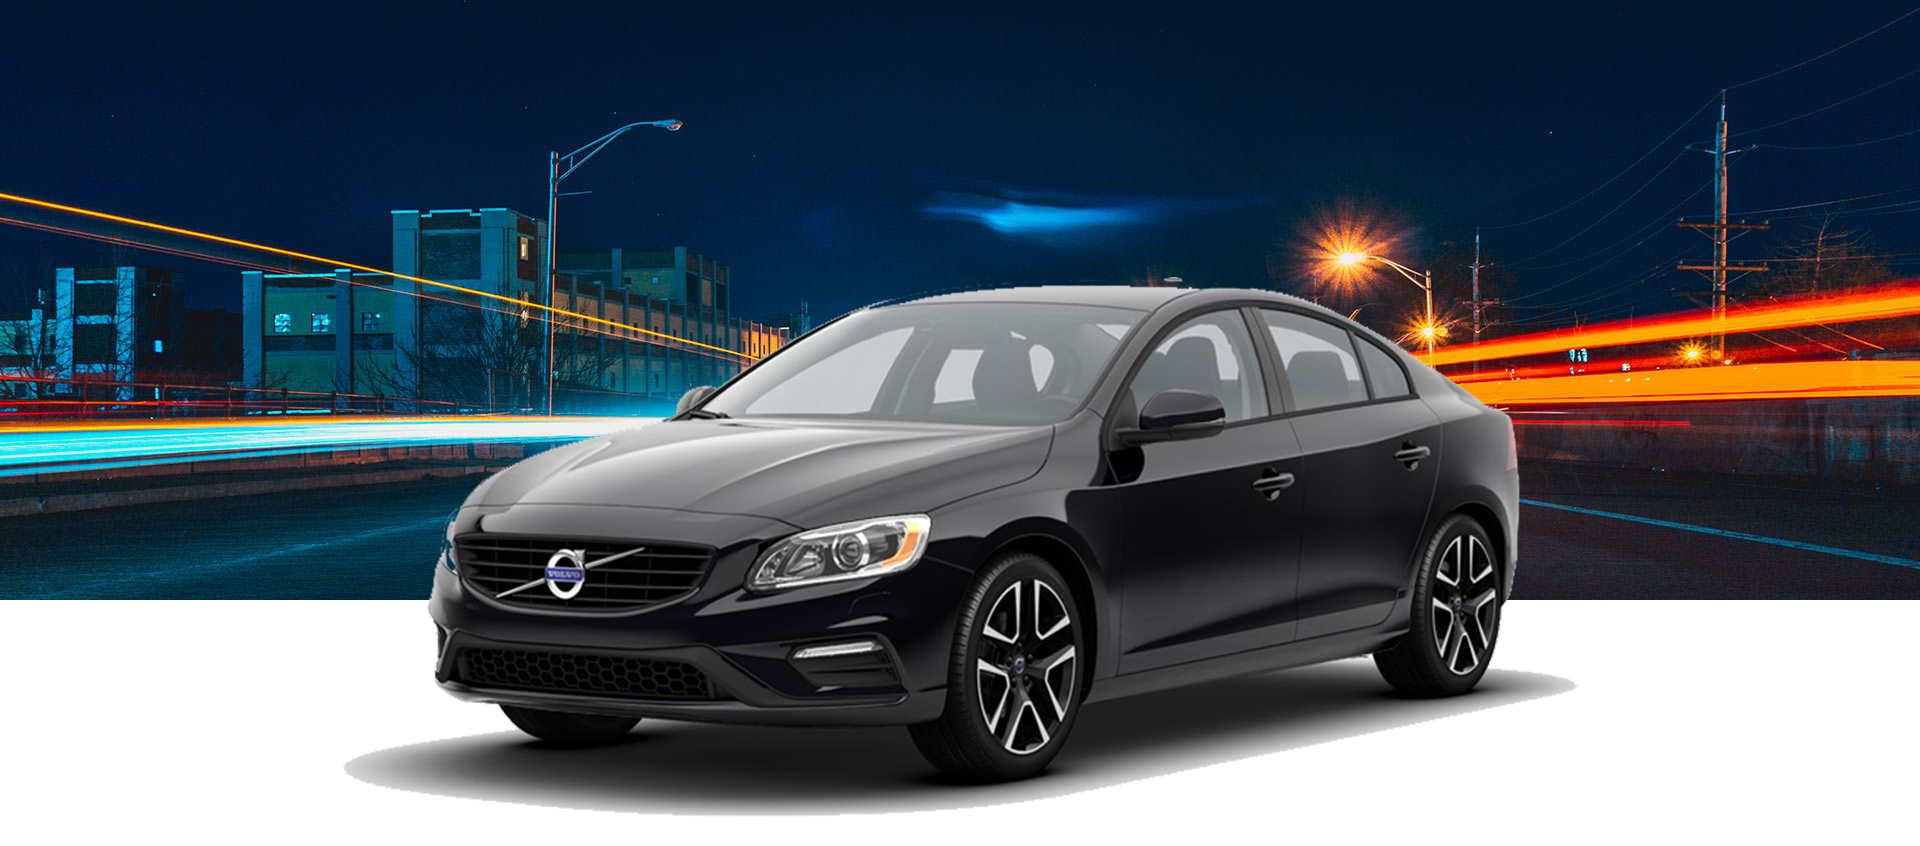 2018 Volvo S60 with background MLP